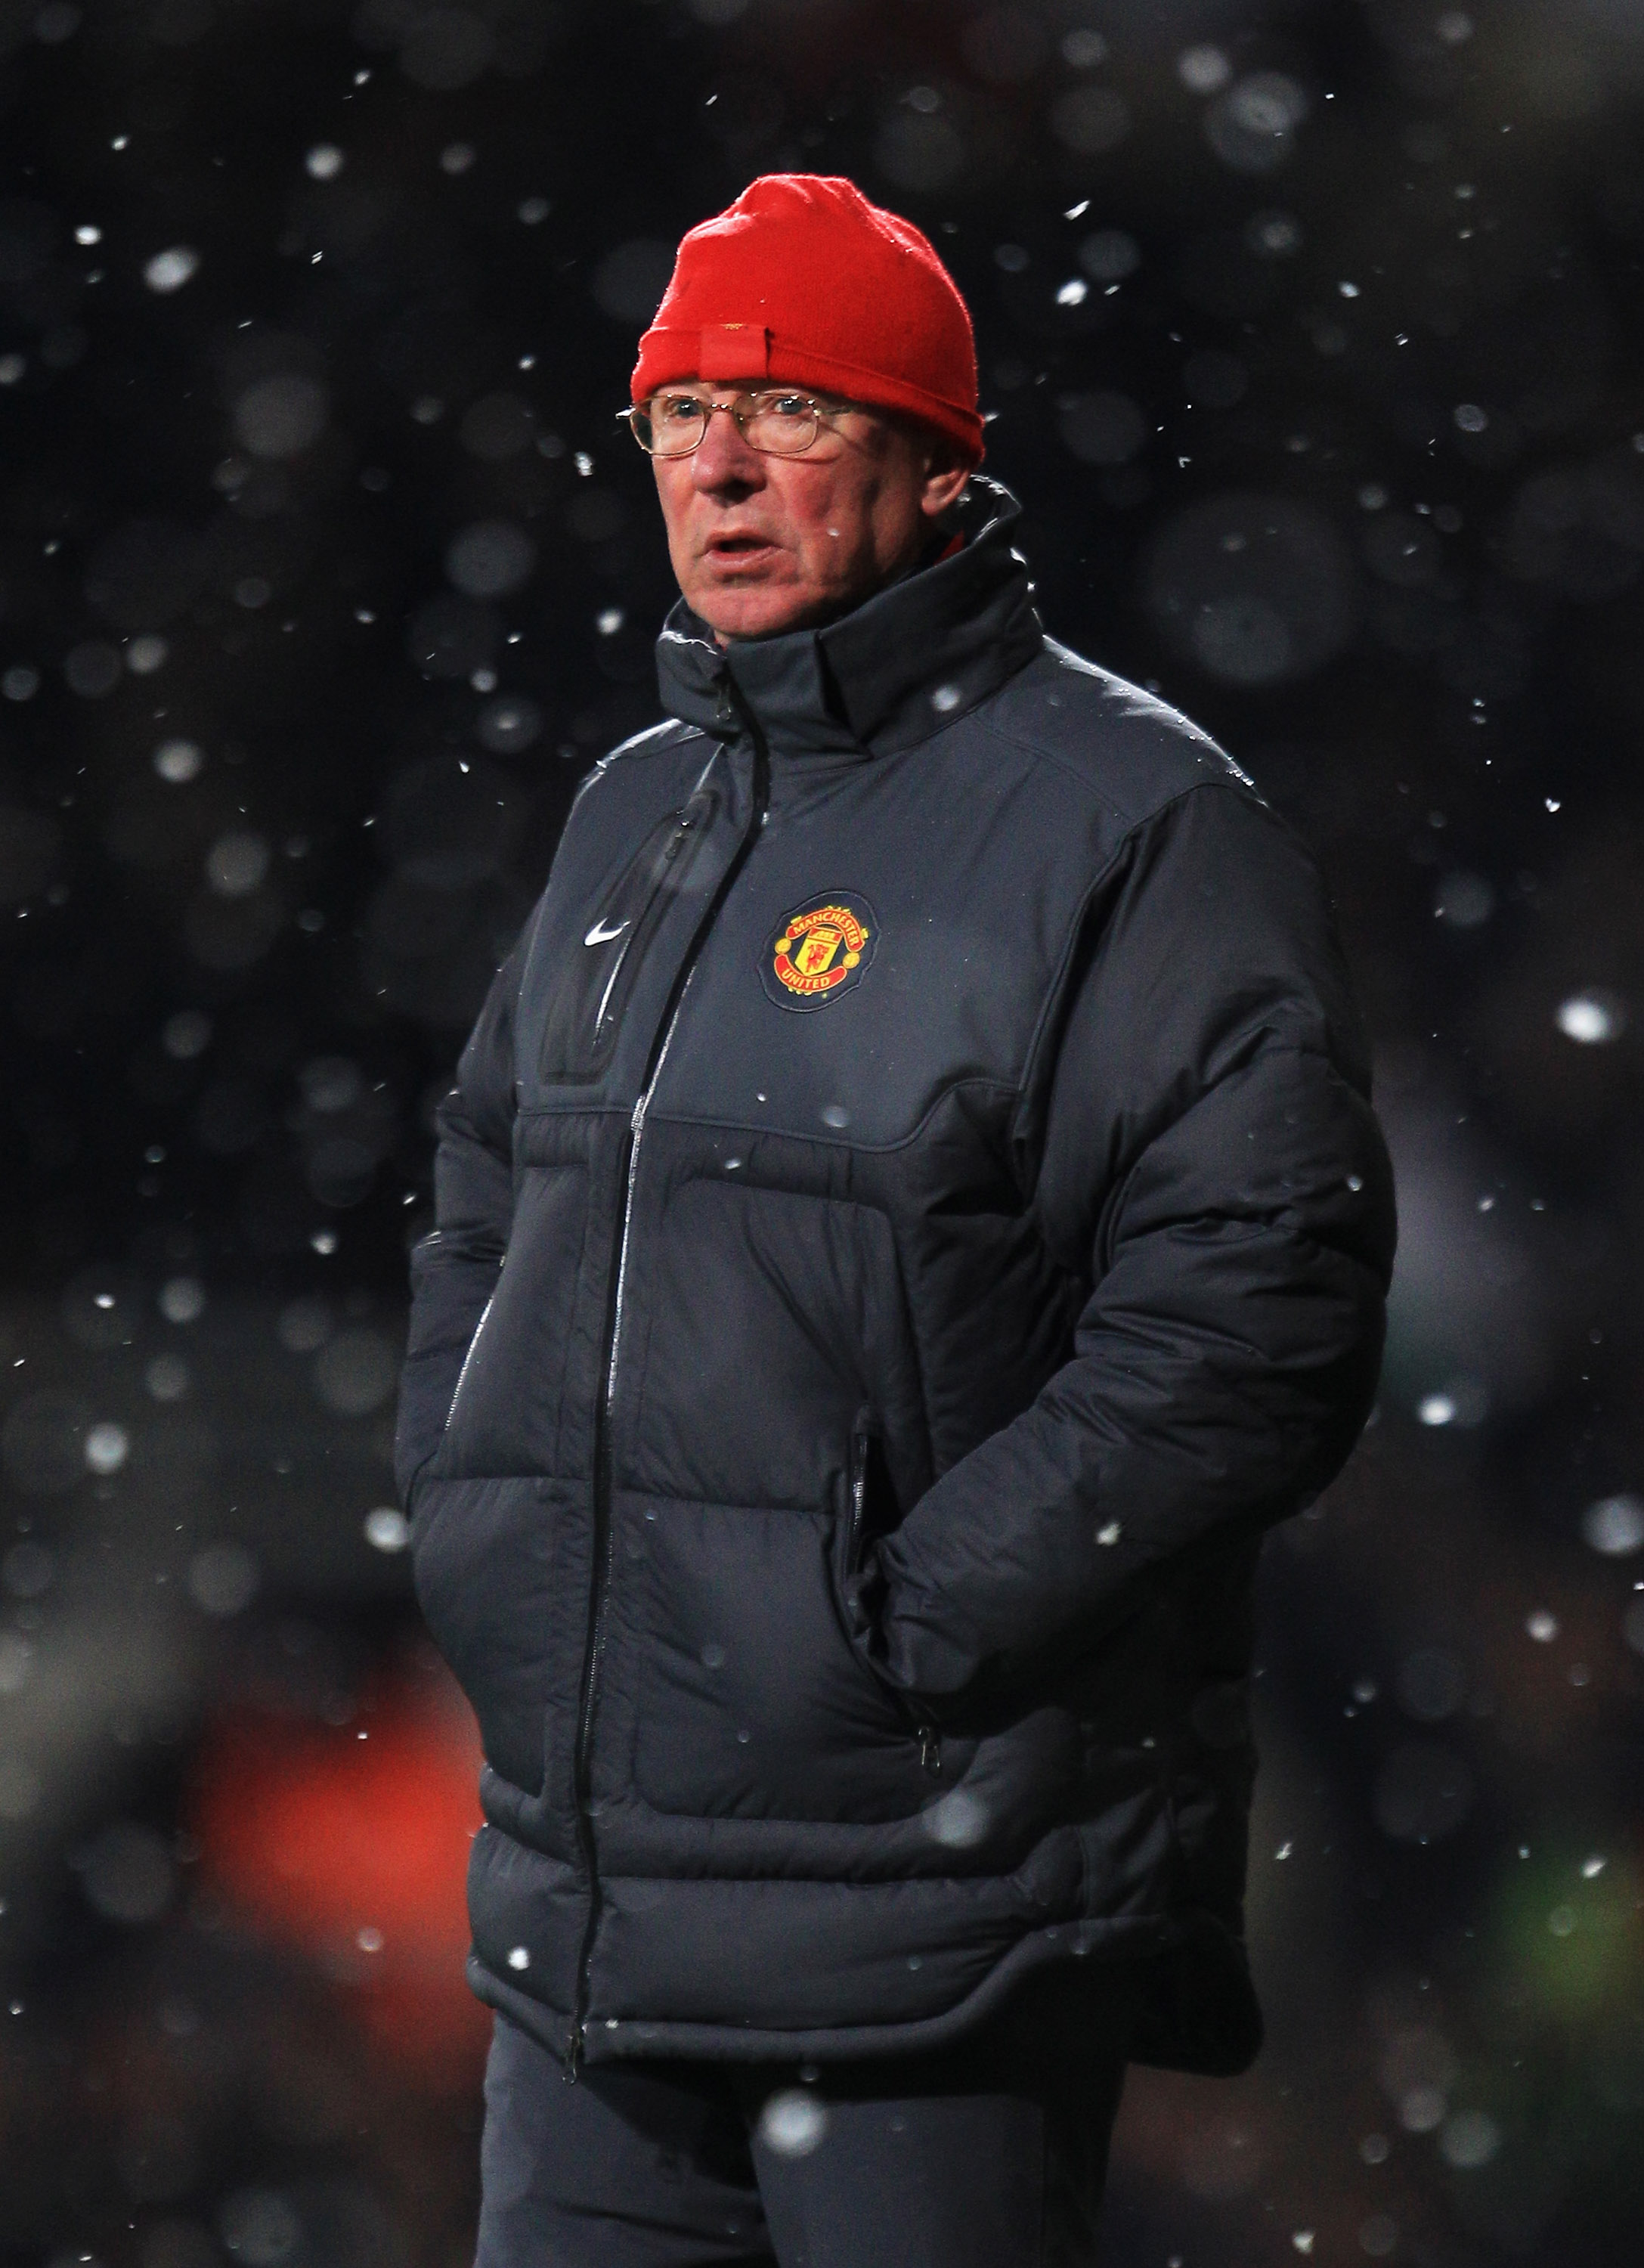 LONDON, ENGLAND - NOVEMBER 30:  Sir Alex Ferguson, manager of Manchester United looks on during the Carling Cup Quarter Final match between West Ham United and Manchester United at the Boleyn Ground on November 30, 2010 in London, England.  (Photo by Mark